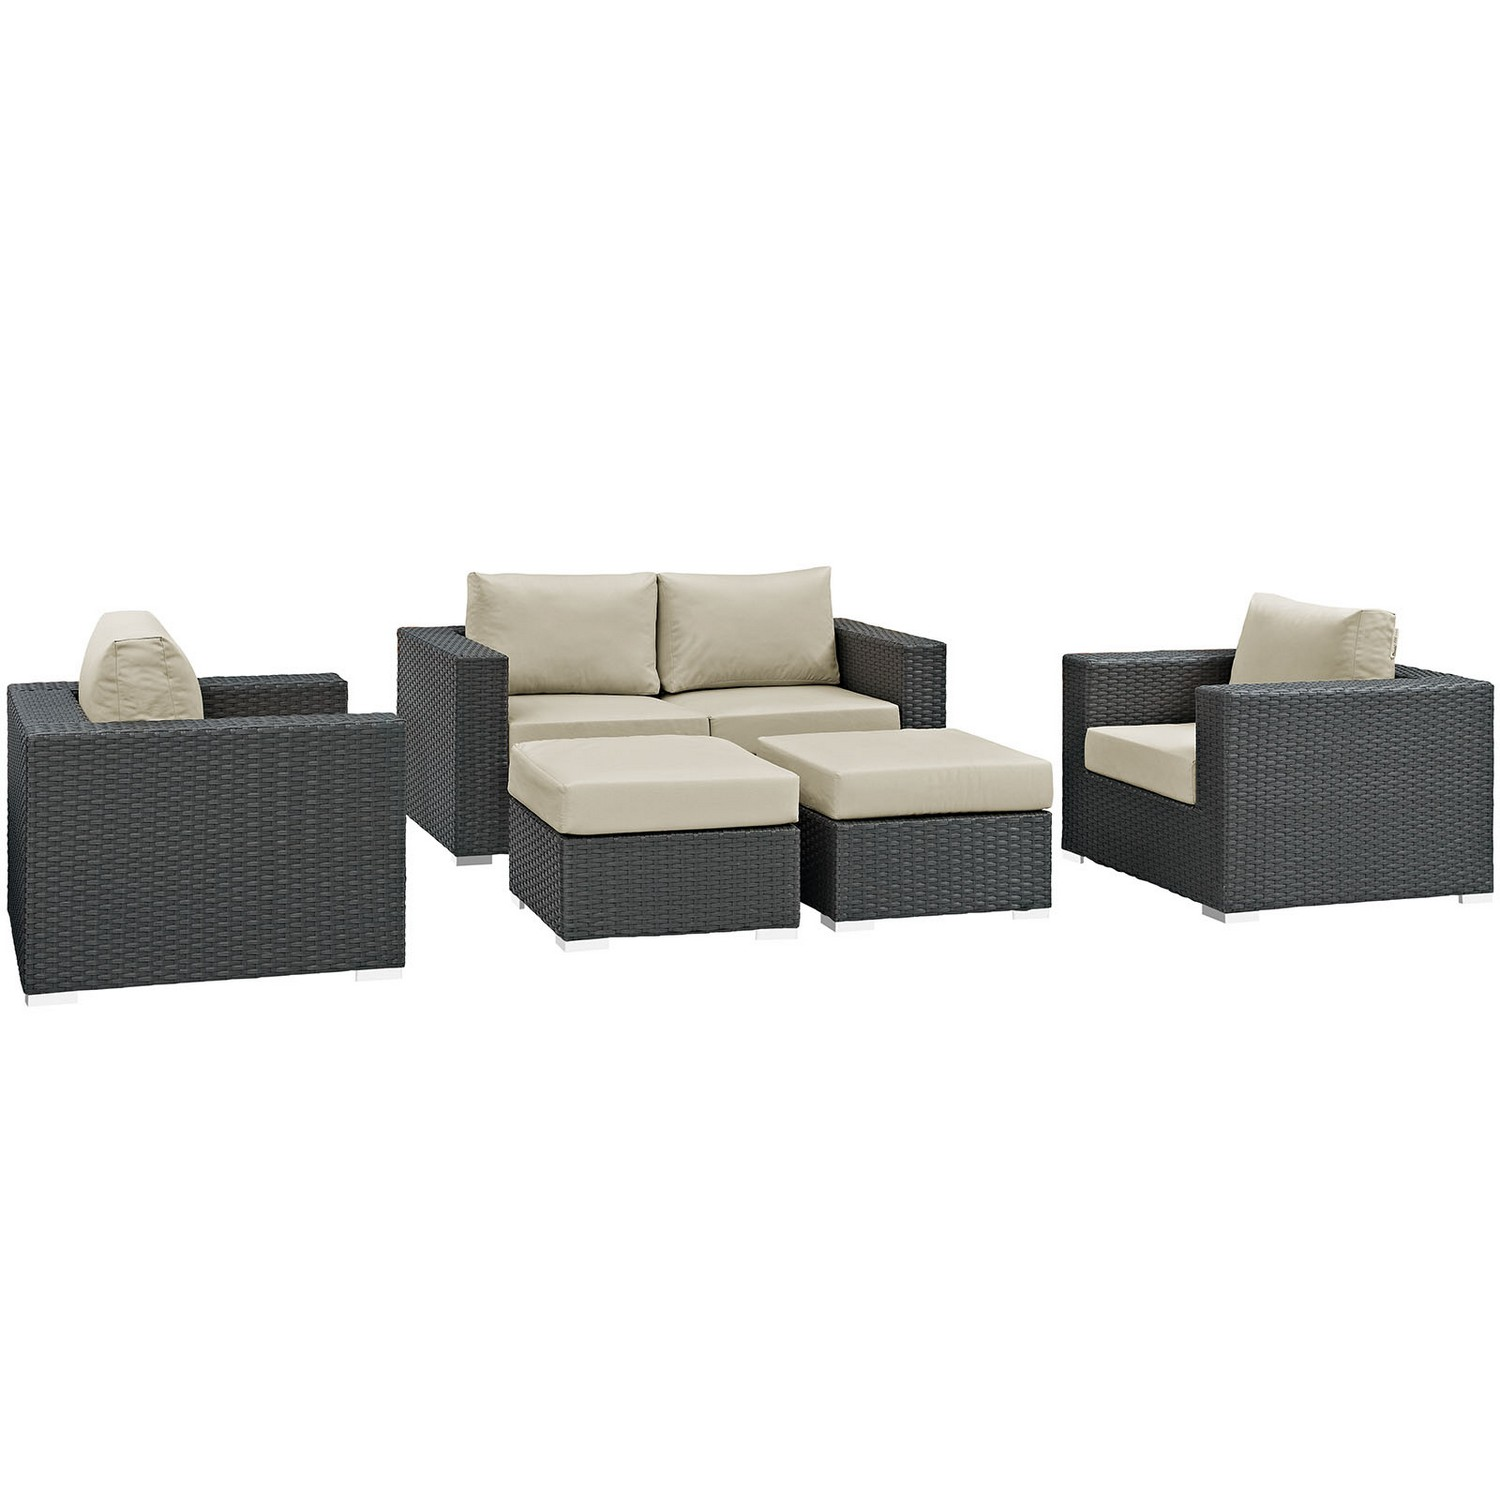 Modway Sojourn 5 Piece Outdoor Patio Sunbrella Sectional Set - Canvas Antique Beige